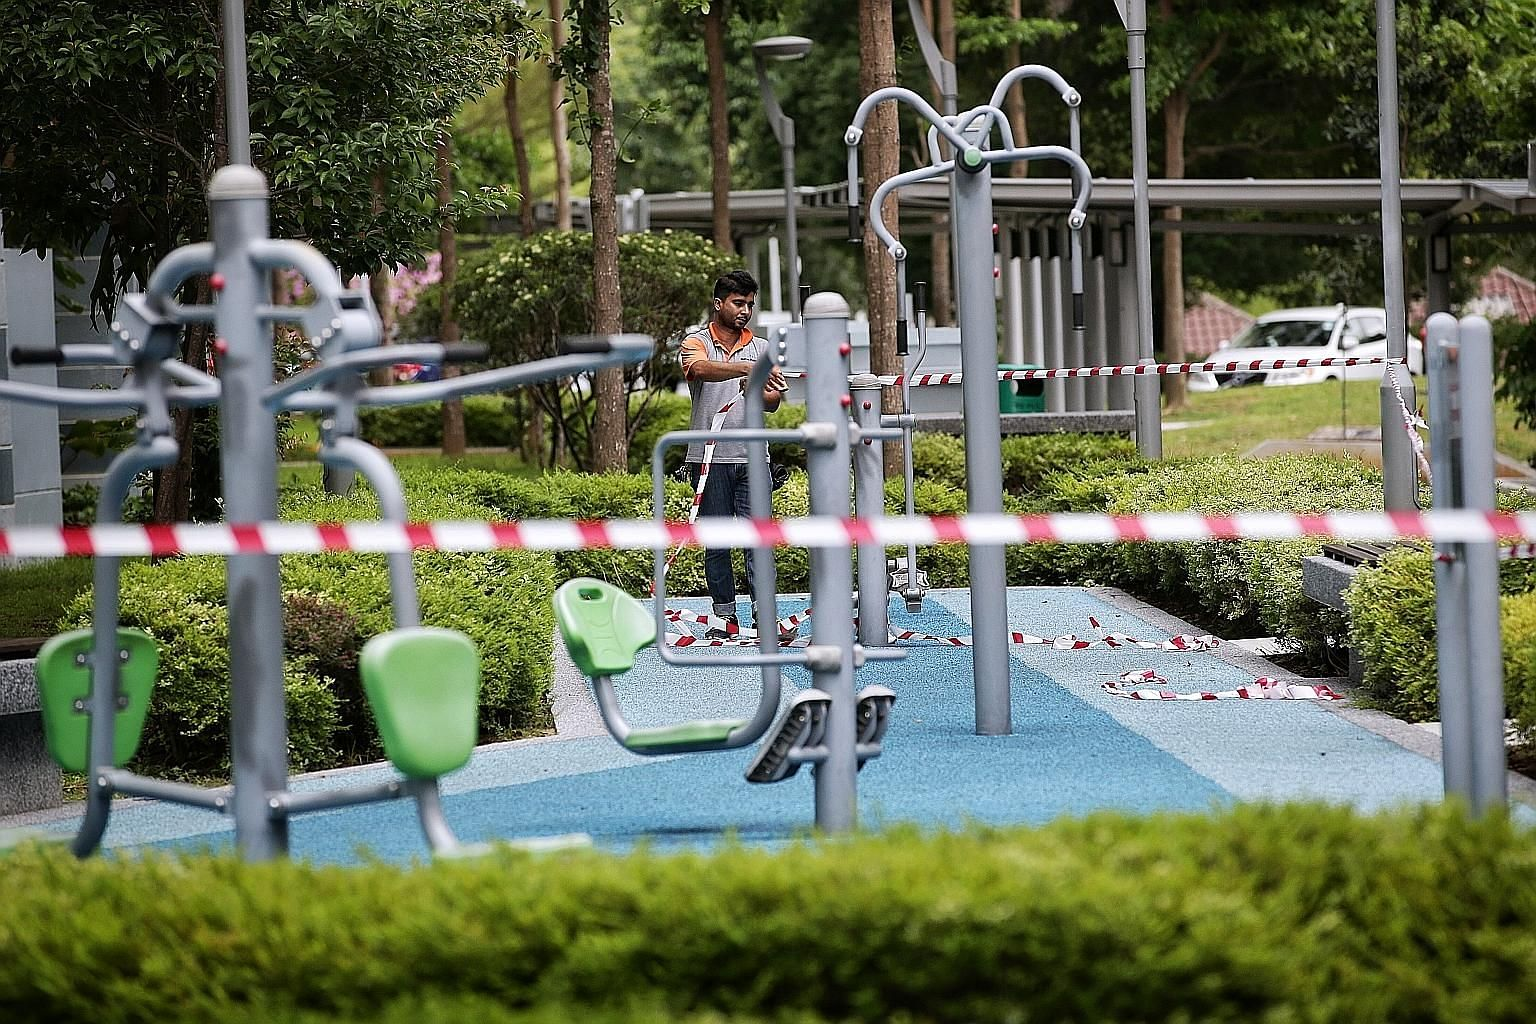 An exercise station in Pasir Ris being cordoned off as part of stricter social distancing measures. These measures would be deemed a resounding success if the number of daily cases falls to the single-digit zone by May 4, when the circuit-breaker pha